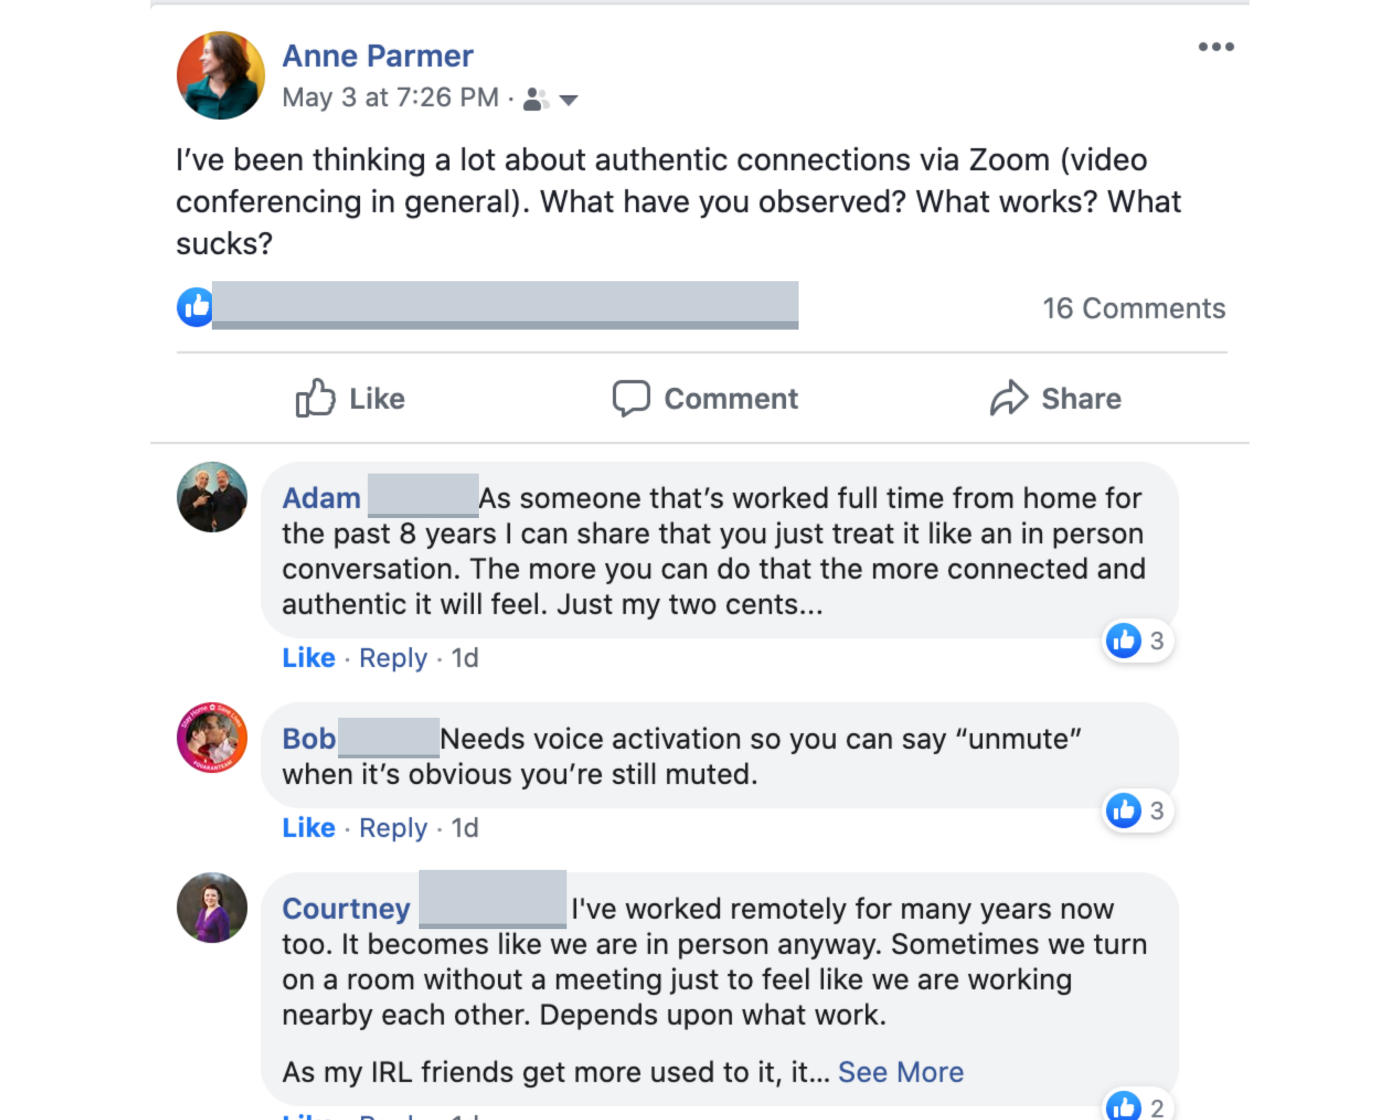 Some comments from my facebook feed about connection via video.